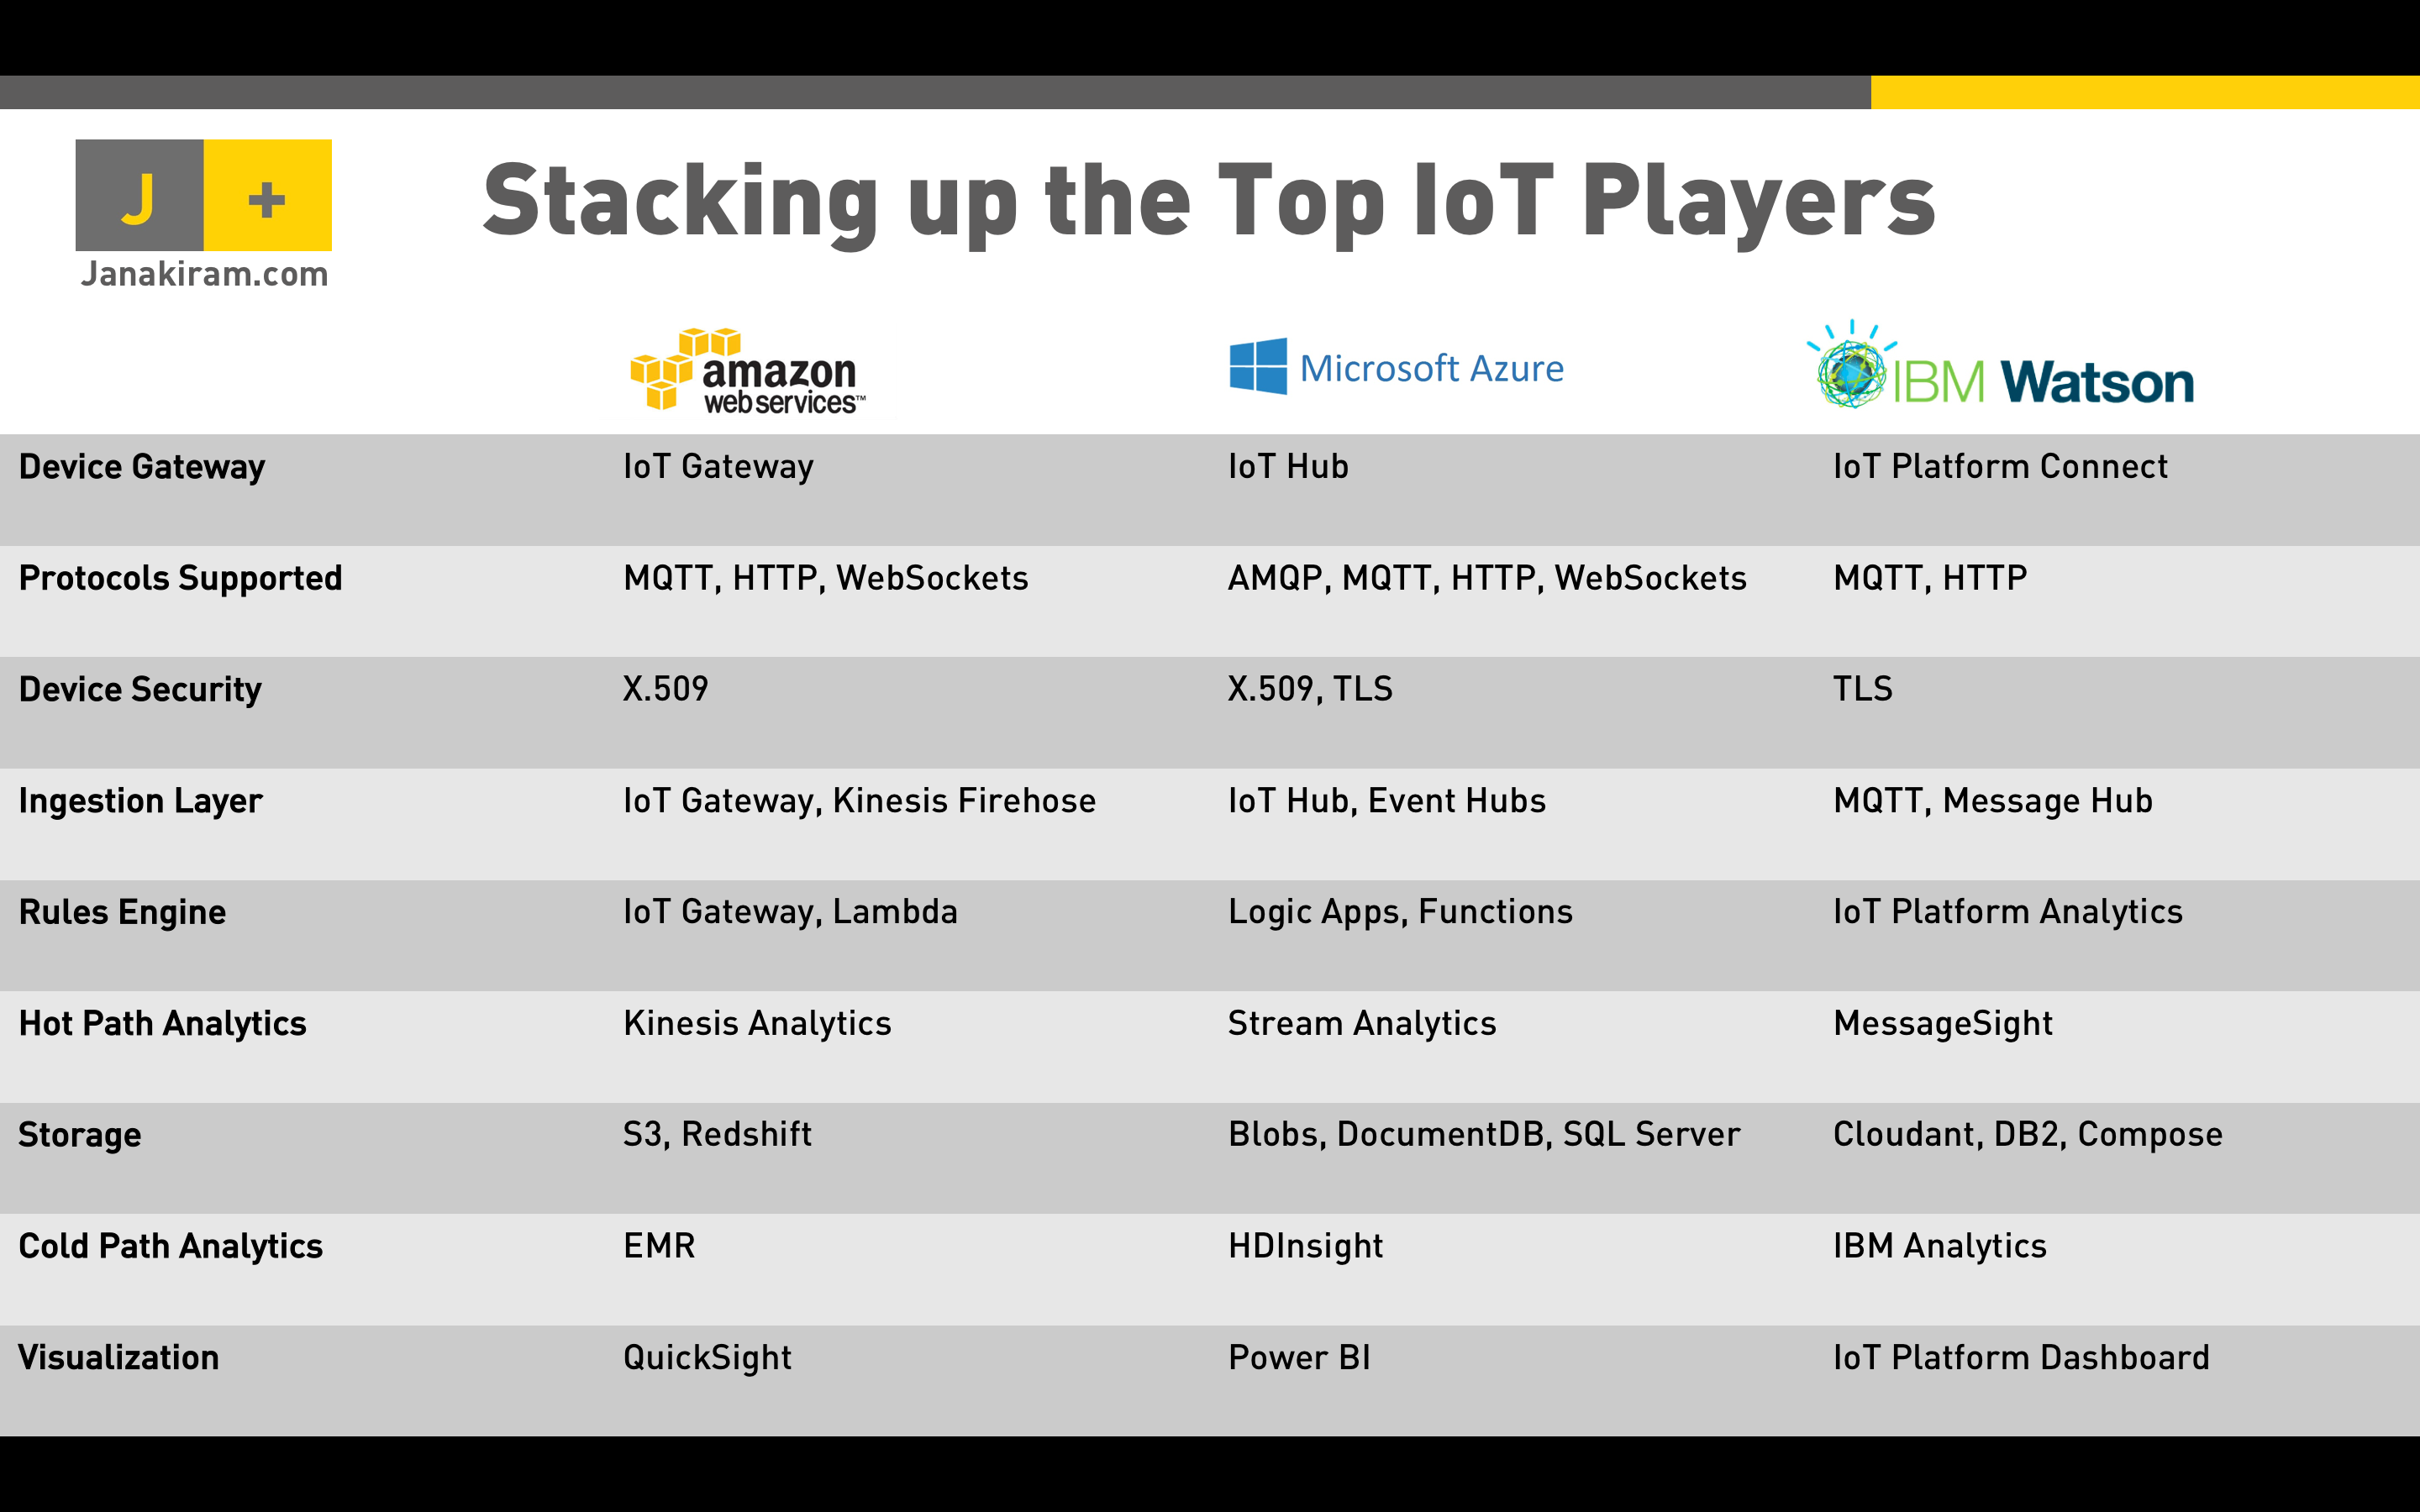 Stacking up the top IoT player